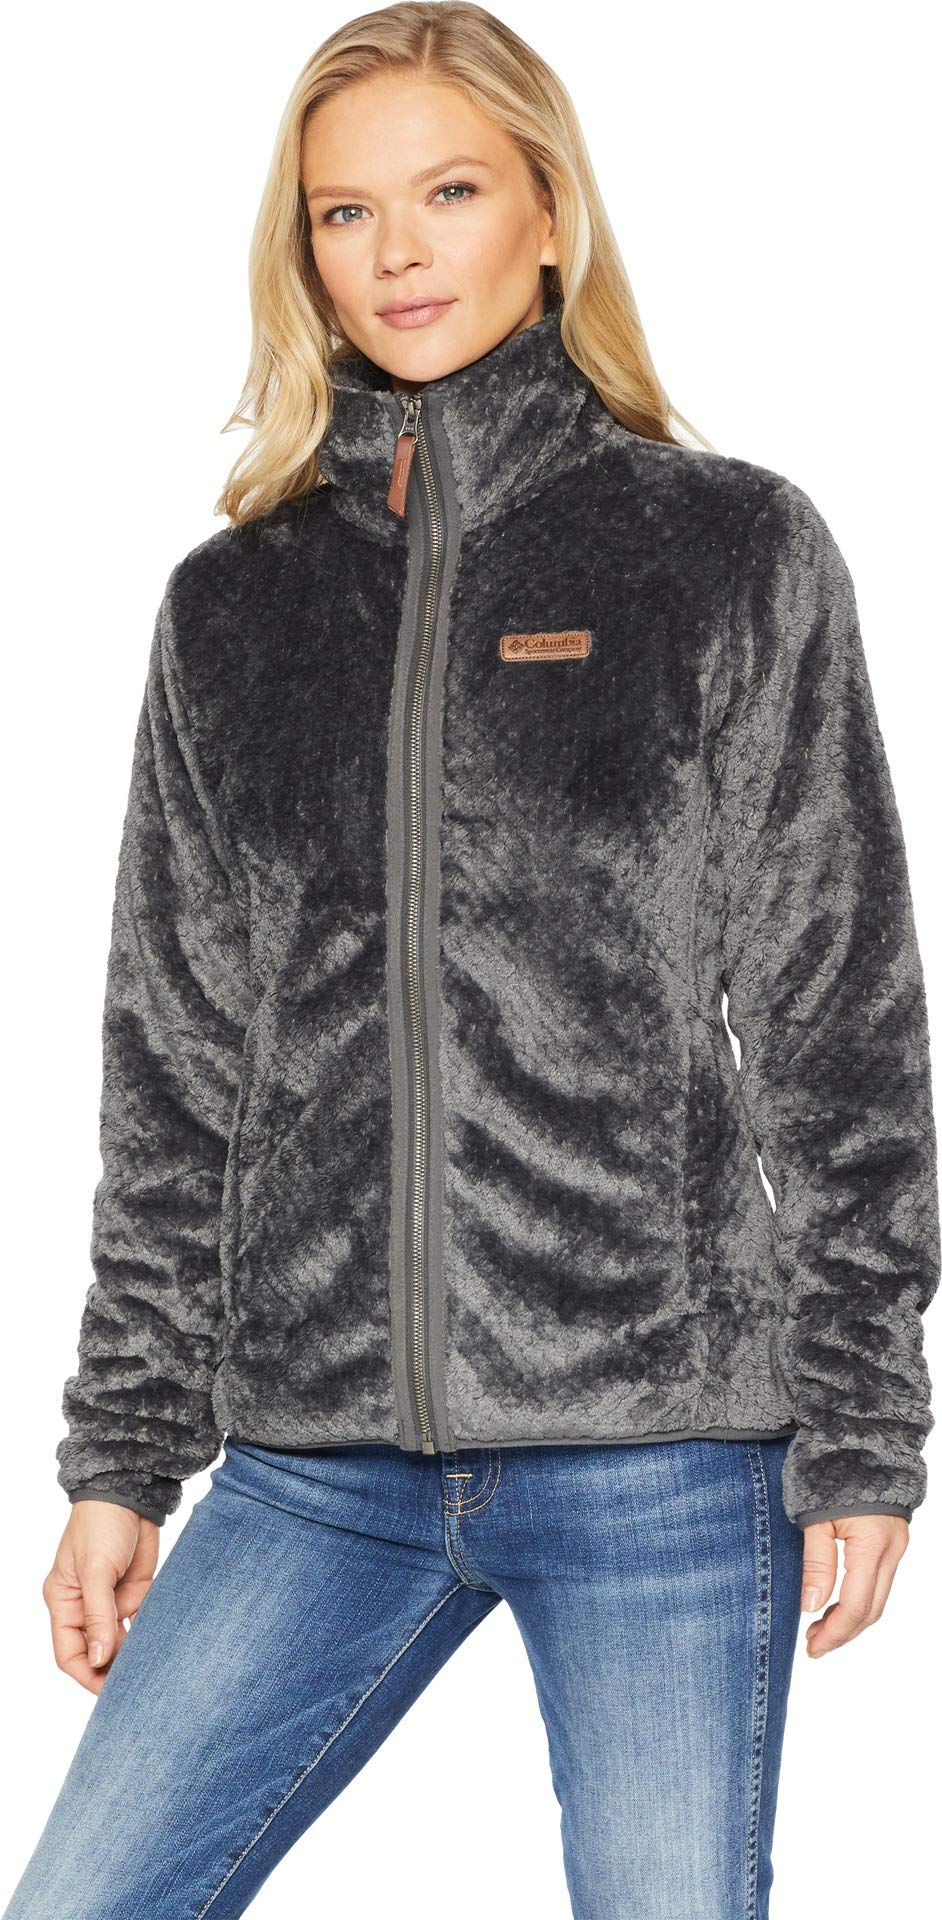 Columbia Women's Fire Side II Sherpa Full Zip, Shark, X-Large by Columbia